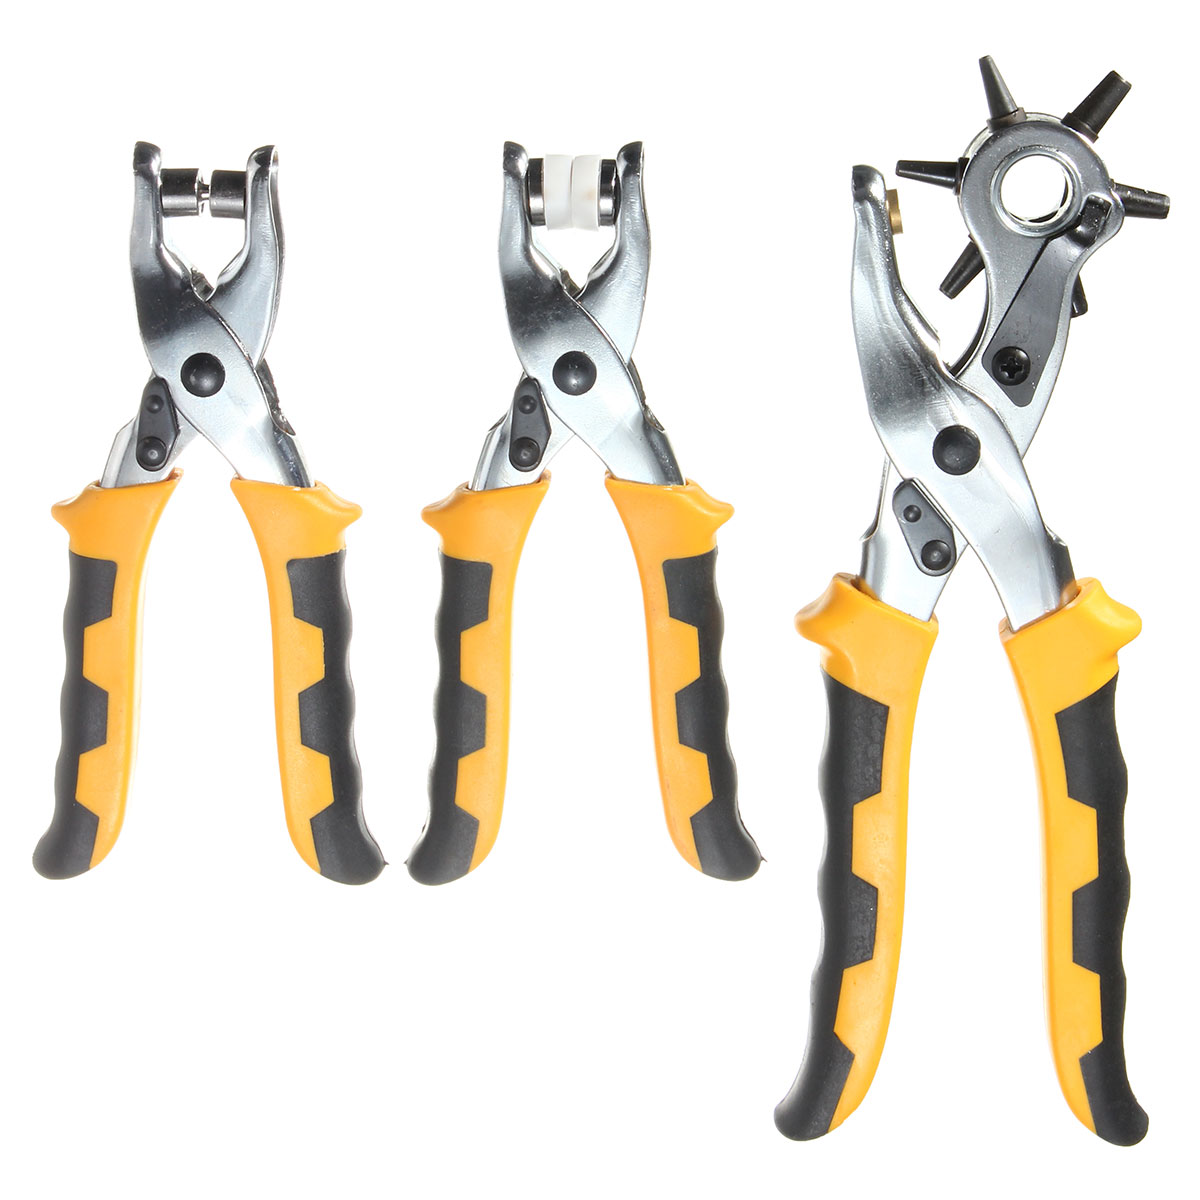 Newest 3 in1 Leather Belt Hole Punch+ Eyelet Plier +Snap Button Grommet Setter Tool Kit Colorful Steel+PVC Plastic Handle